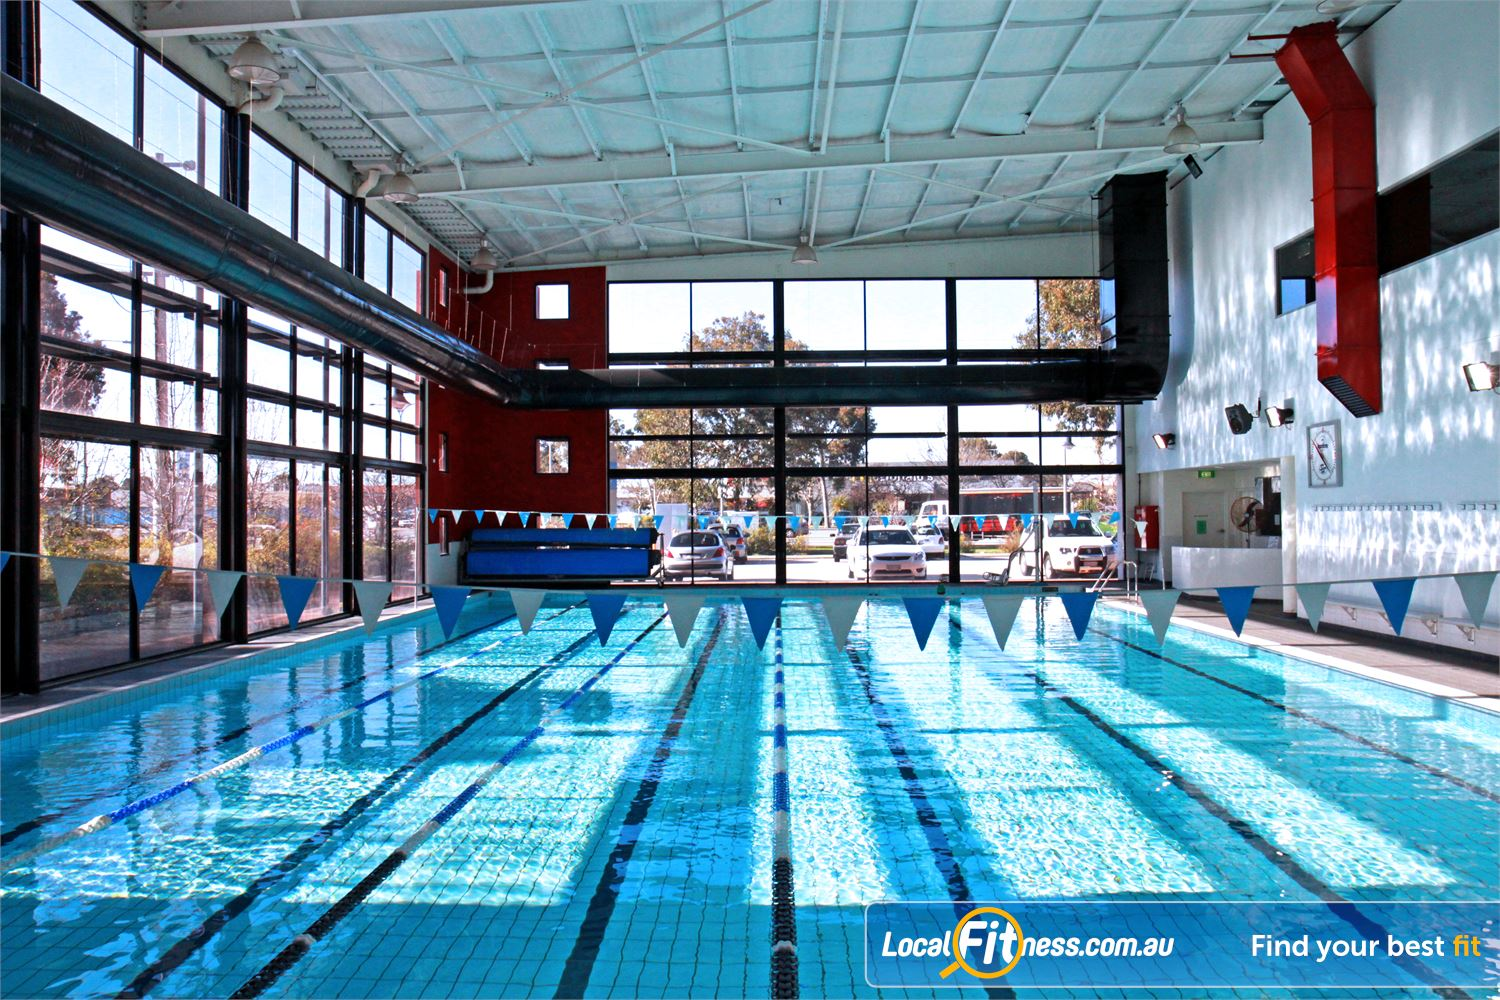 Goodlife Health Clubs Cannington Our Cannington swimming pool is perfect for lap swimming.